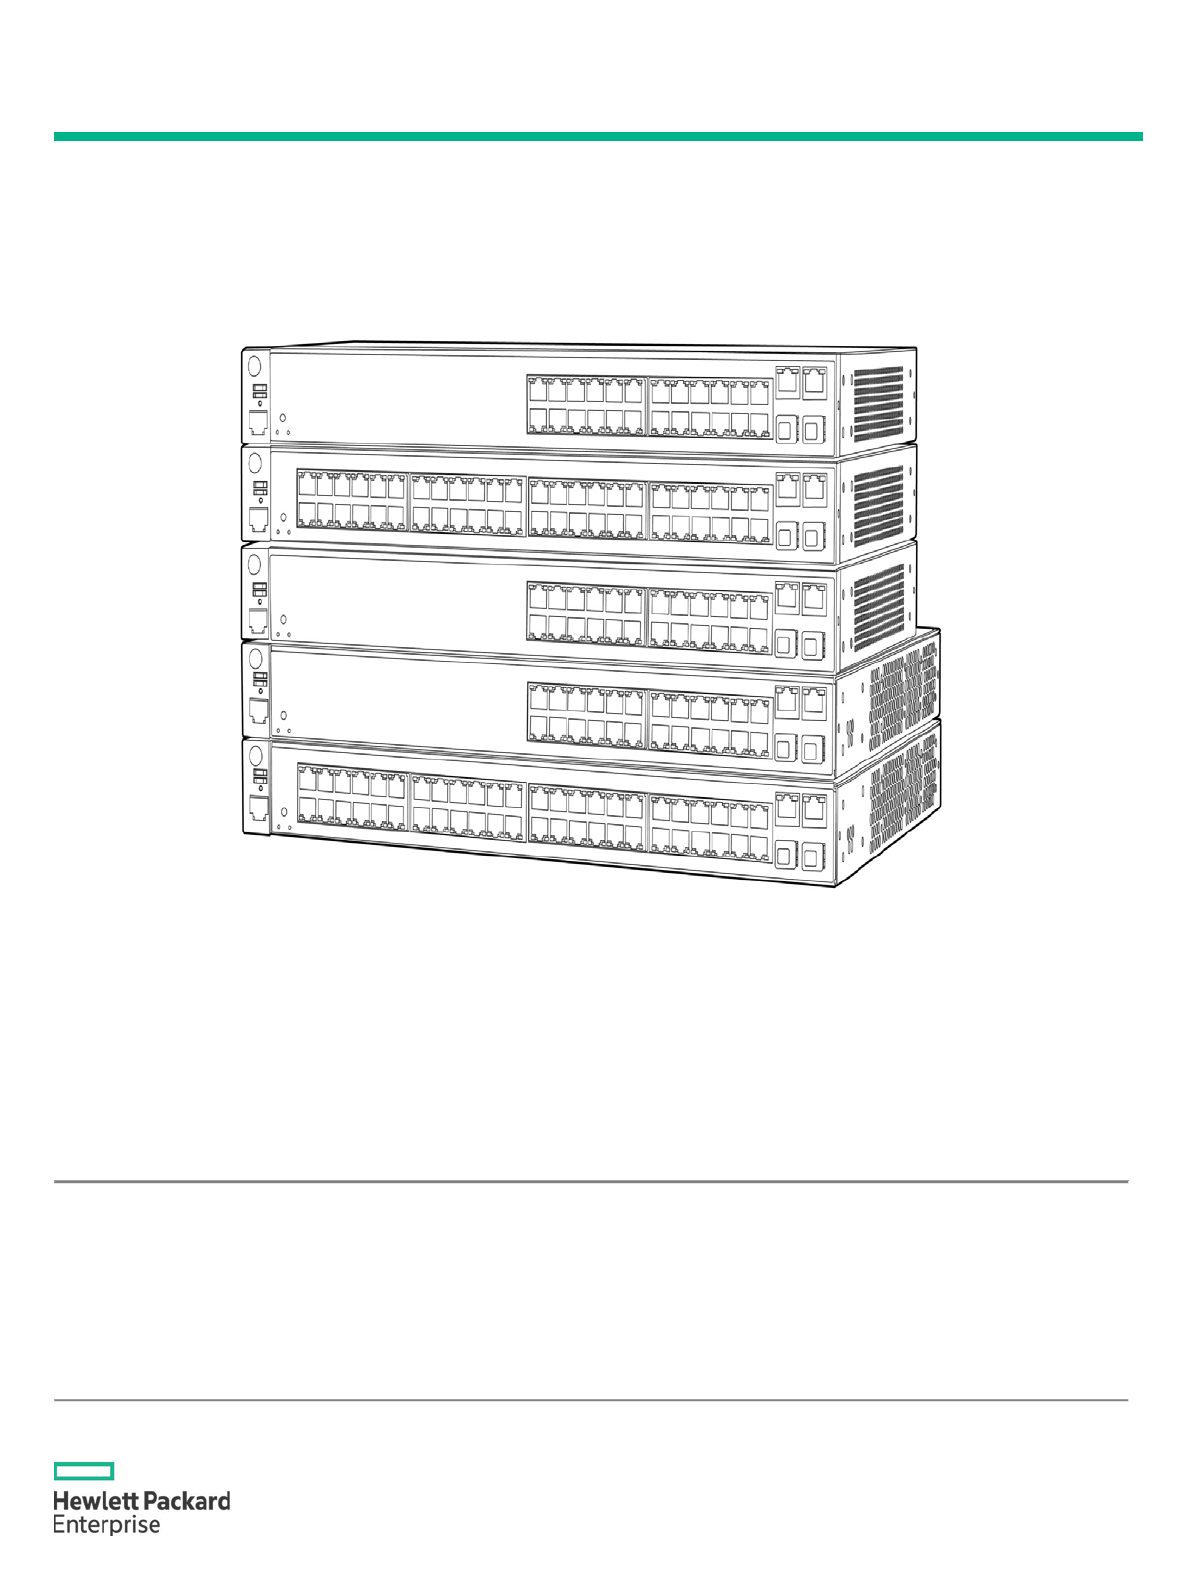 QuickSpecs Aruba 2620 Switch Series